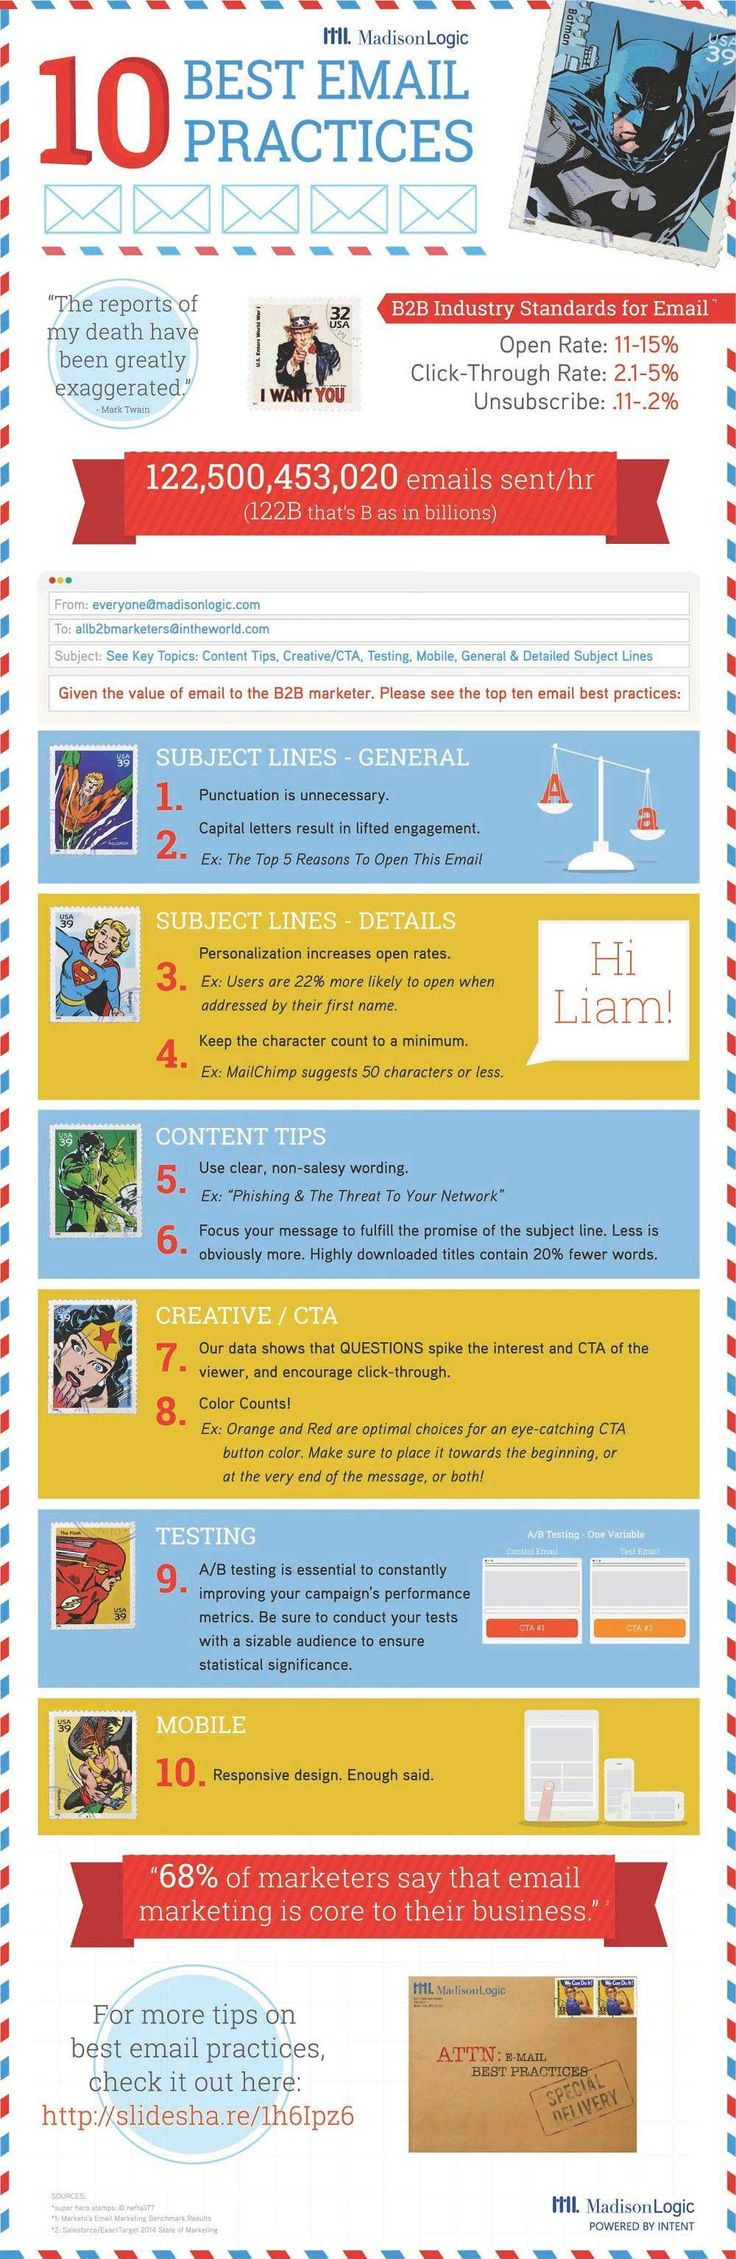 Email Marketing - 10 Email Best-Practices [Infographic] : MarketingProfs Article